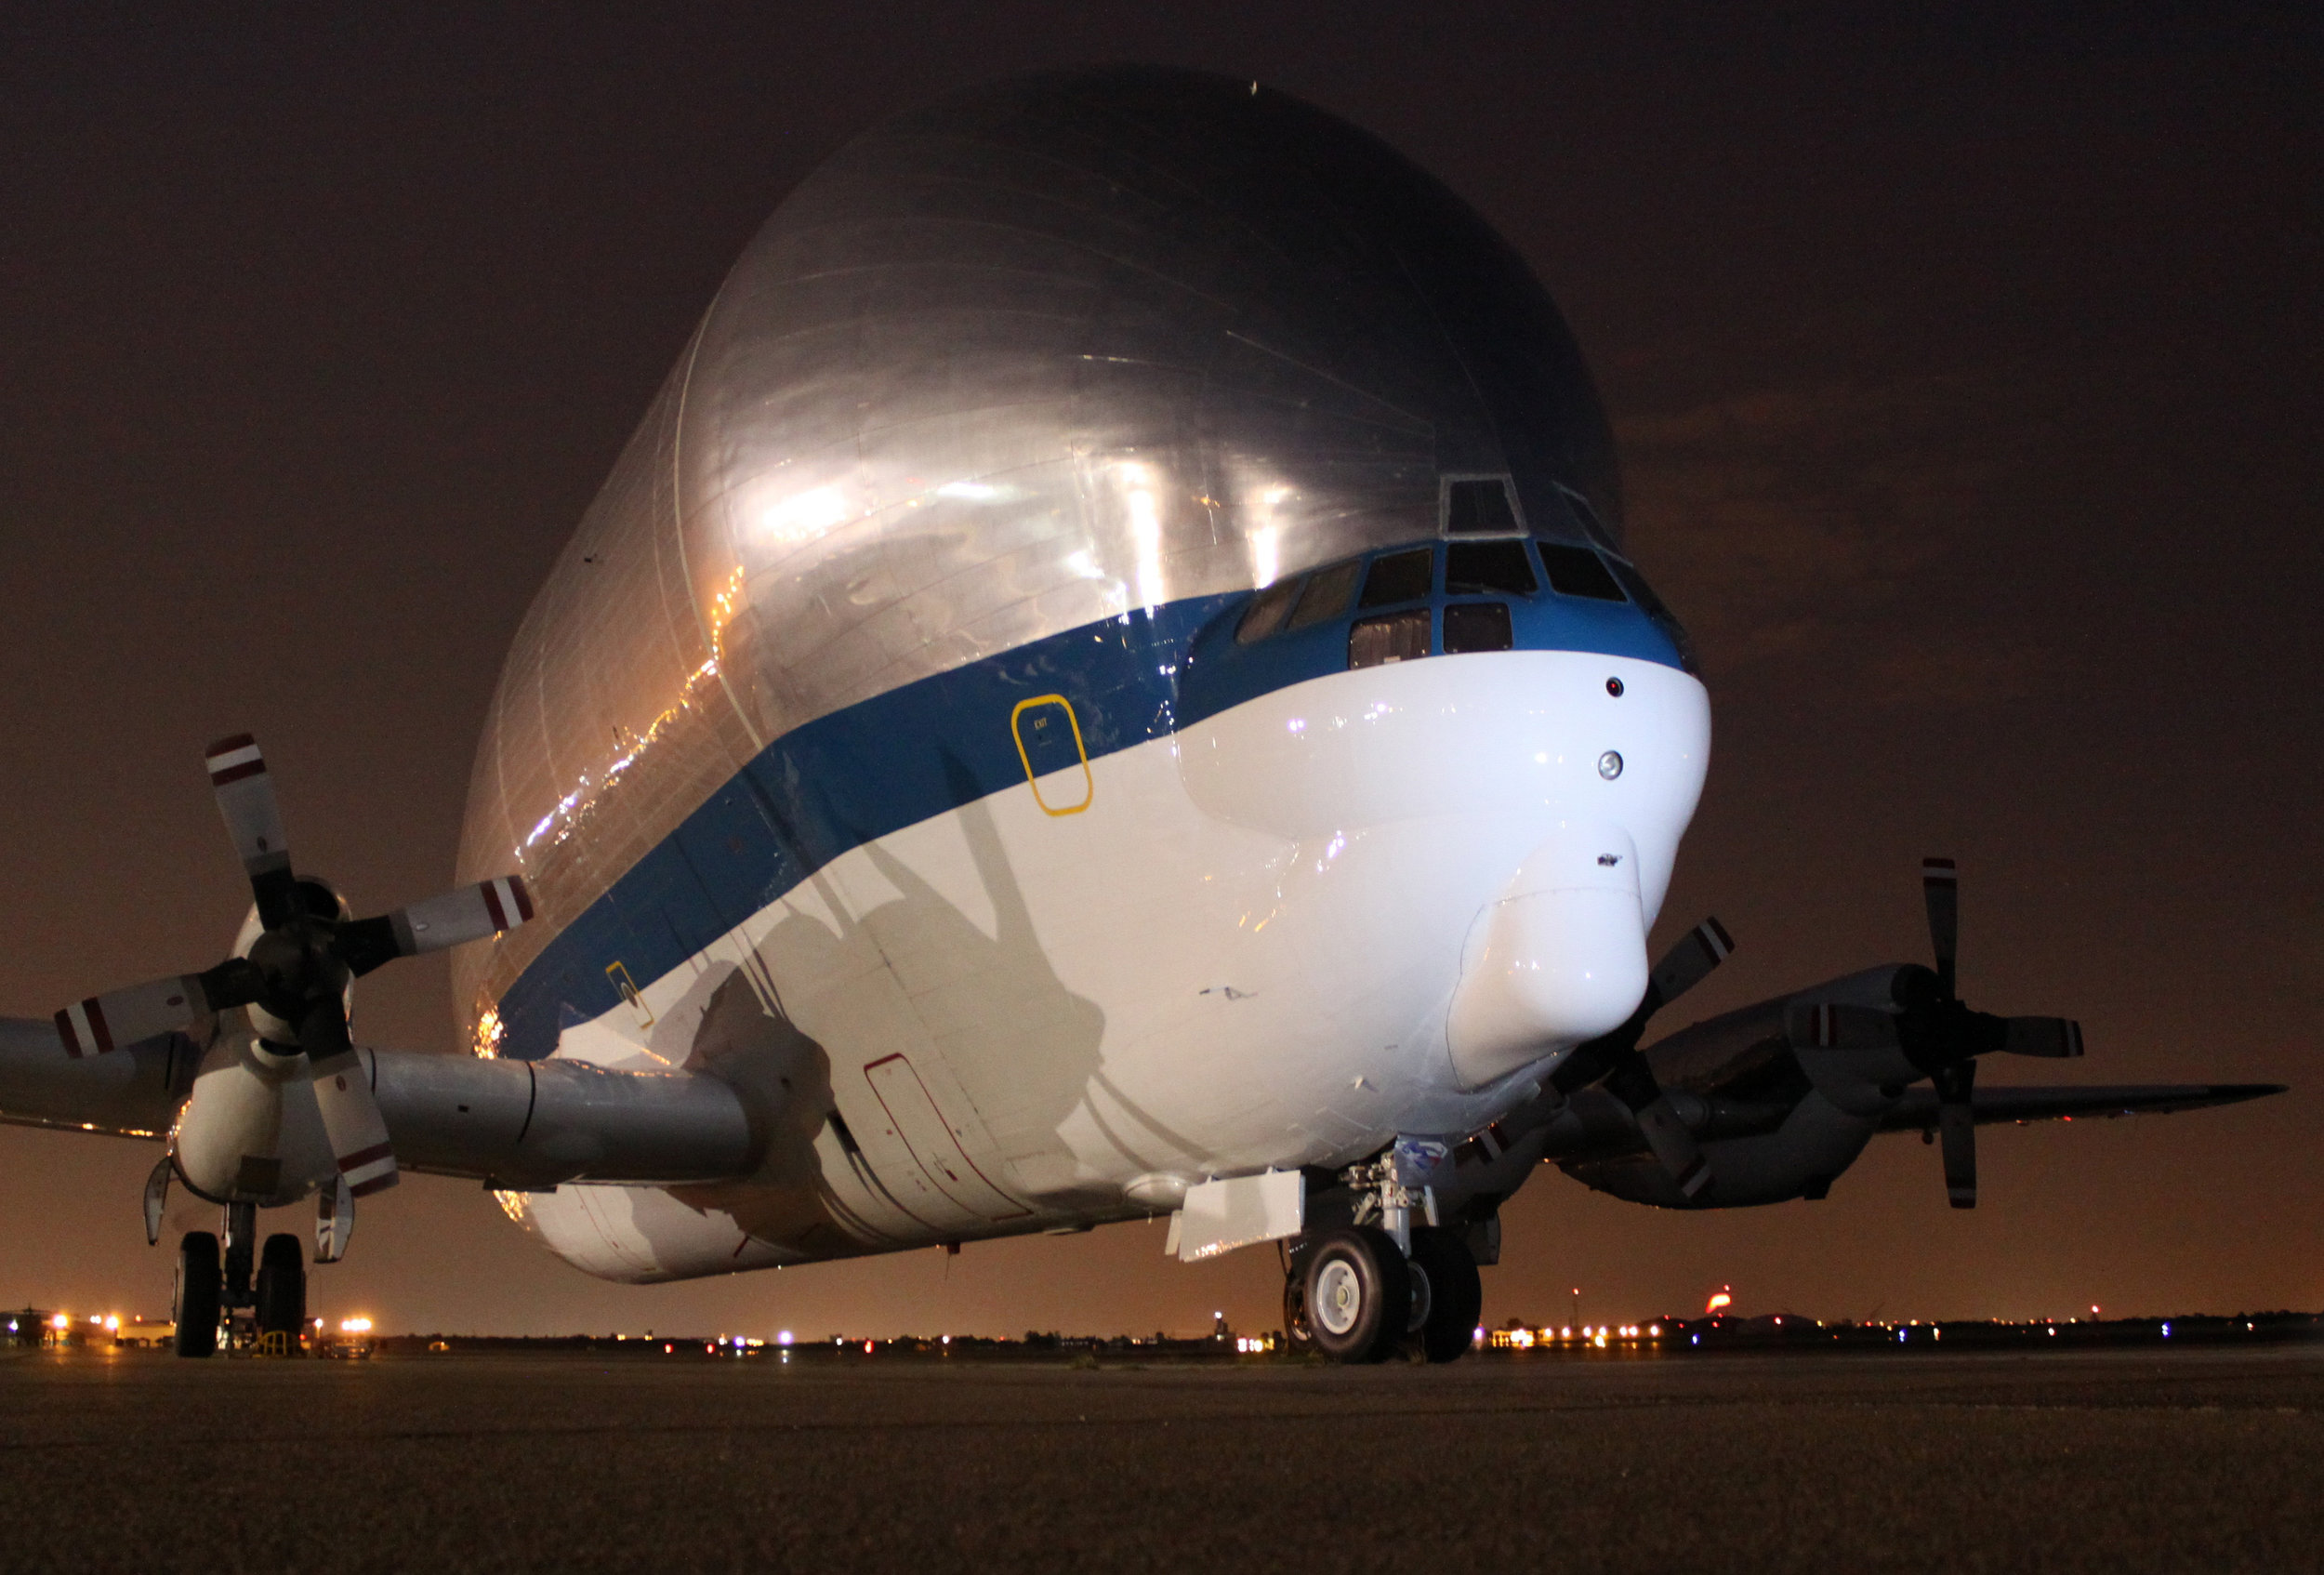 Super Guppy at night